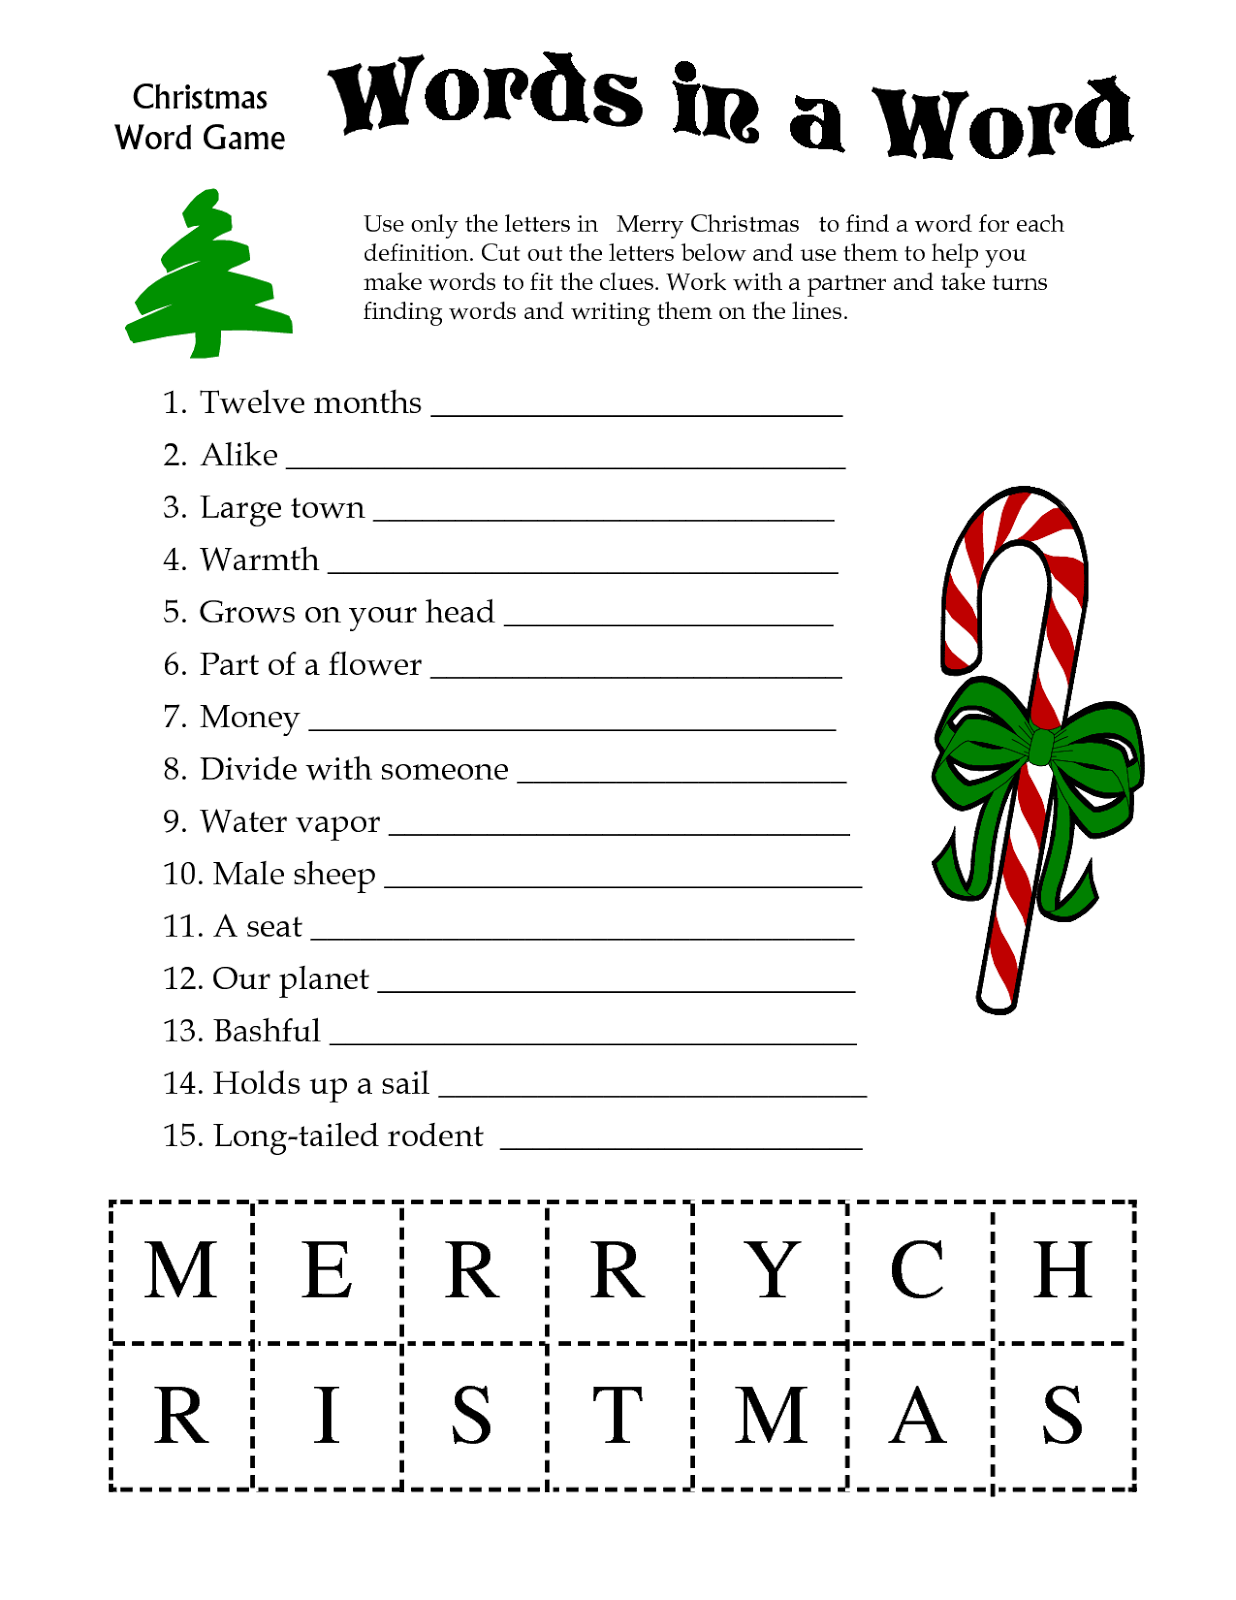 photo relating to Printable Christmas Games for Adults referred to as Printable Xmas Game titles - High definition Wallpapers Weblog